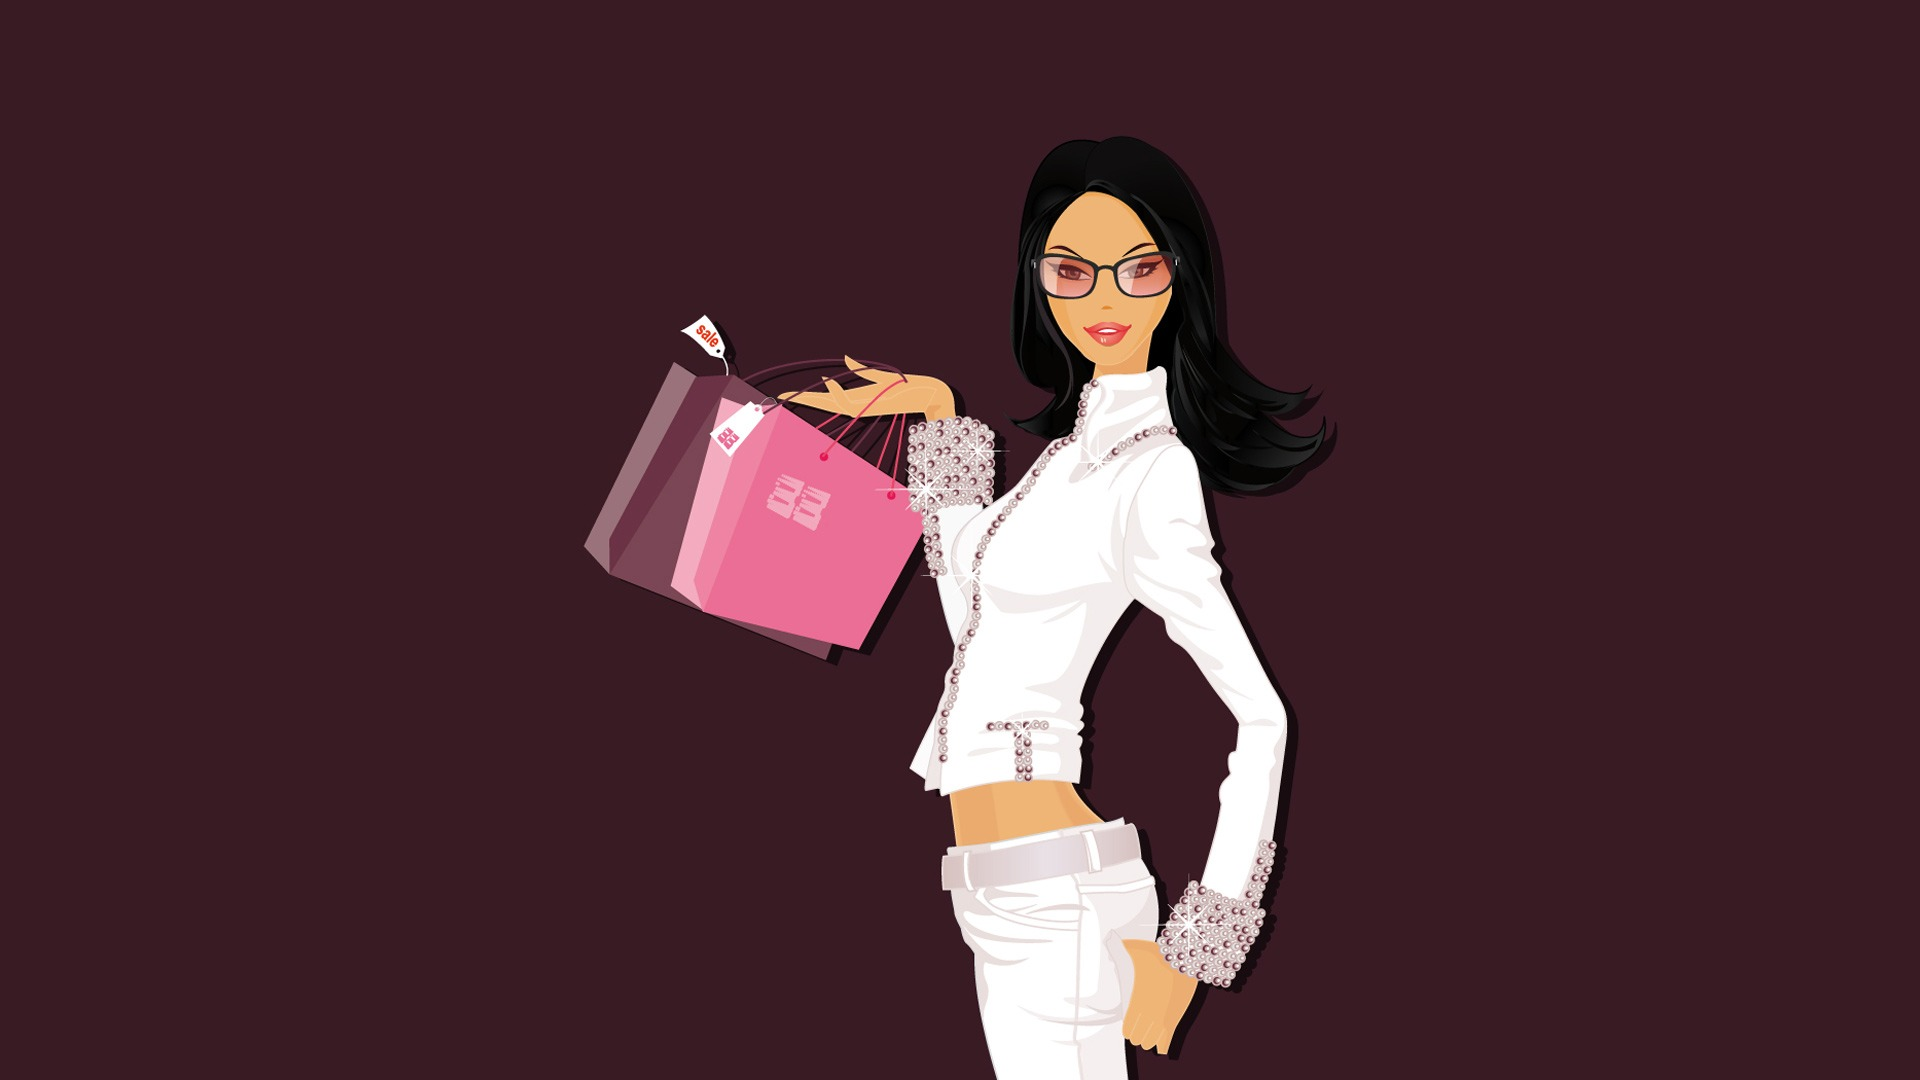 New girl wallpaper wallpapers for free download about 3513 shopping girl wallpaper vector 3d voltagebd Images